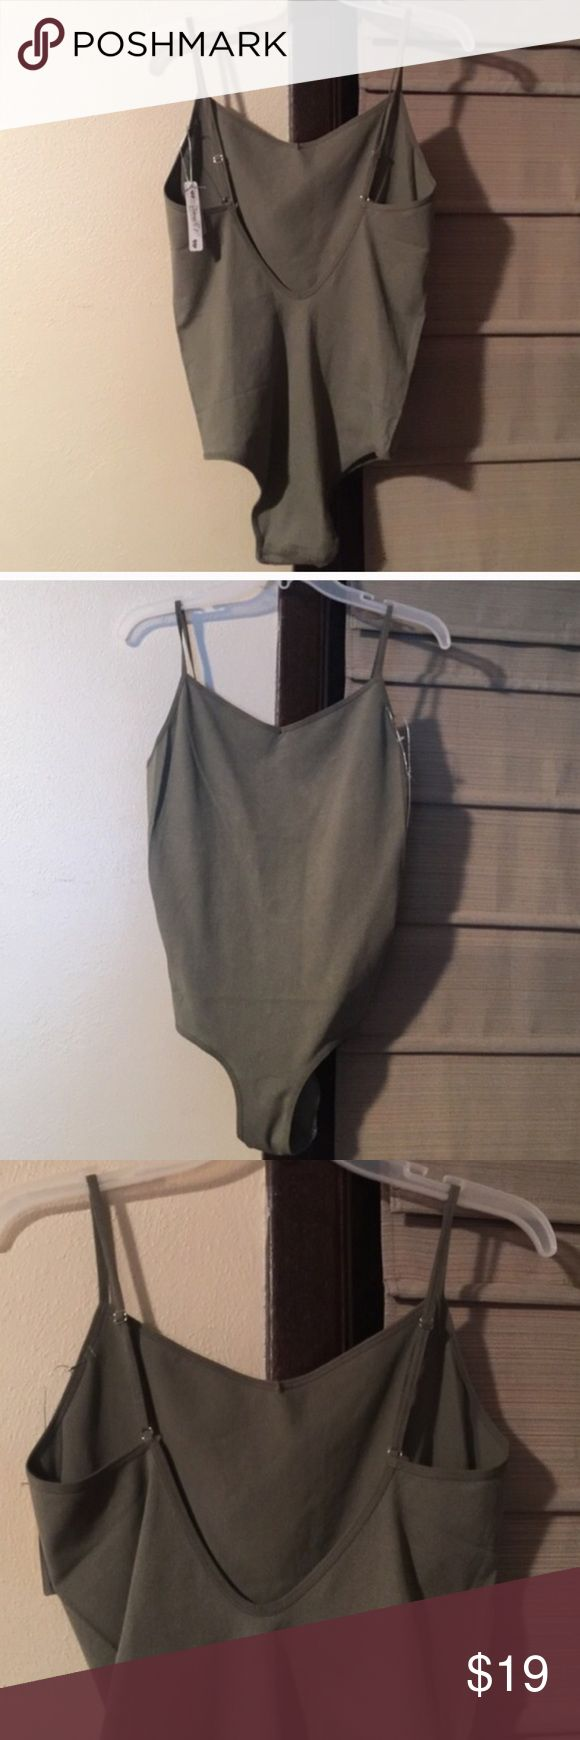 Last 1! NWT Olive Low Back bodysuit stretchy Brand new with tags. Not yeezy, branded for promo. Super cute and sexy extra low back stretchy one piece bodysuit. Size is a M/L, more on the medium side but super stretchy form fitting material. Straps adjustable and back is super low (measure 2-3 inches above your belly button and that's about where's it hits in the back) great w/ a pair of jeans or high waist skirt. Olive green bodysuit one piece. Price firm, sold several of these and found…